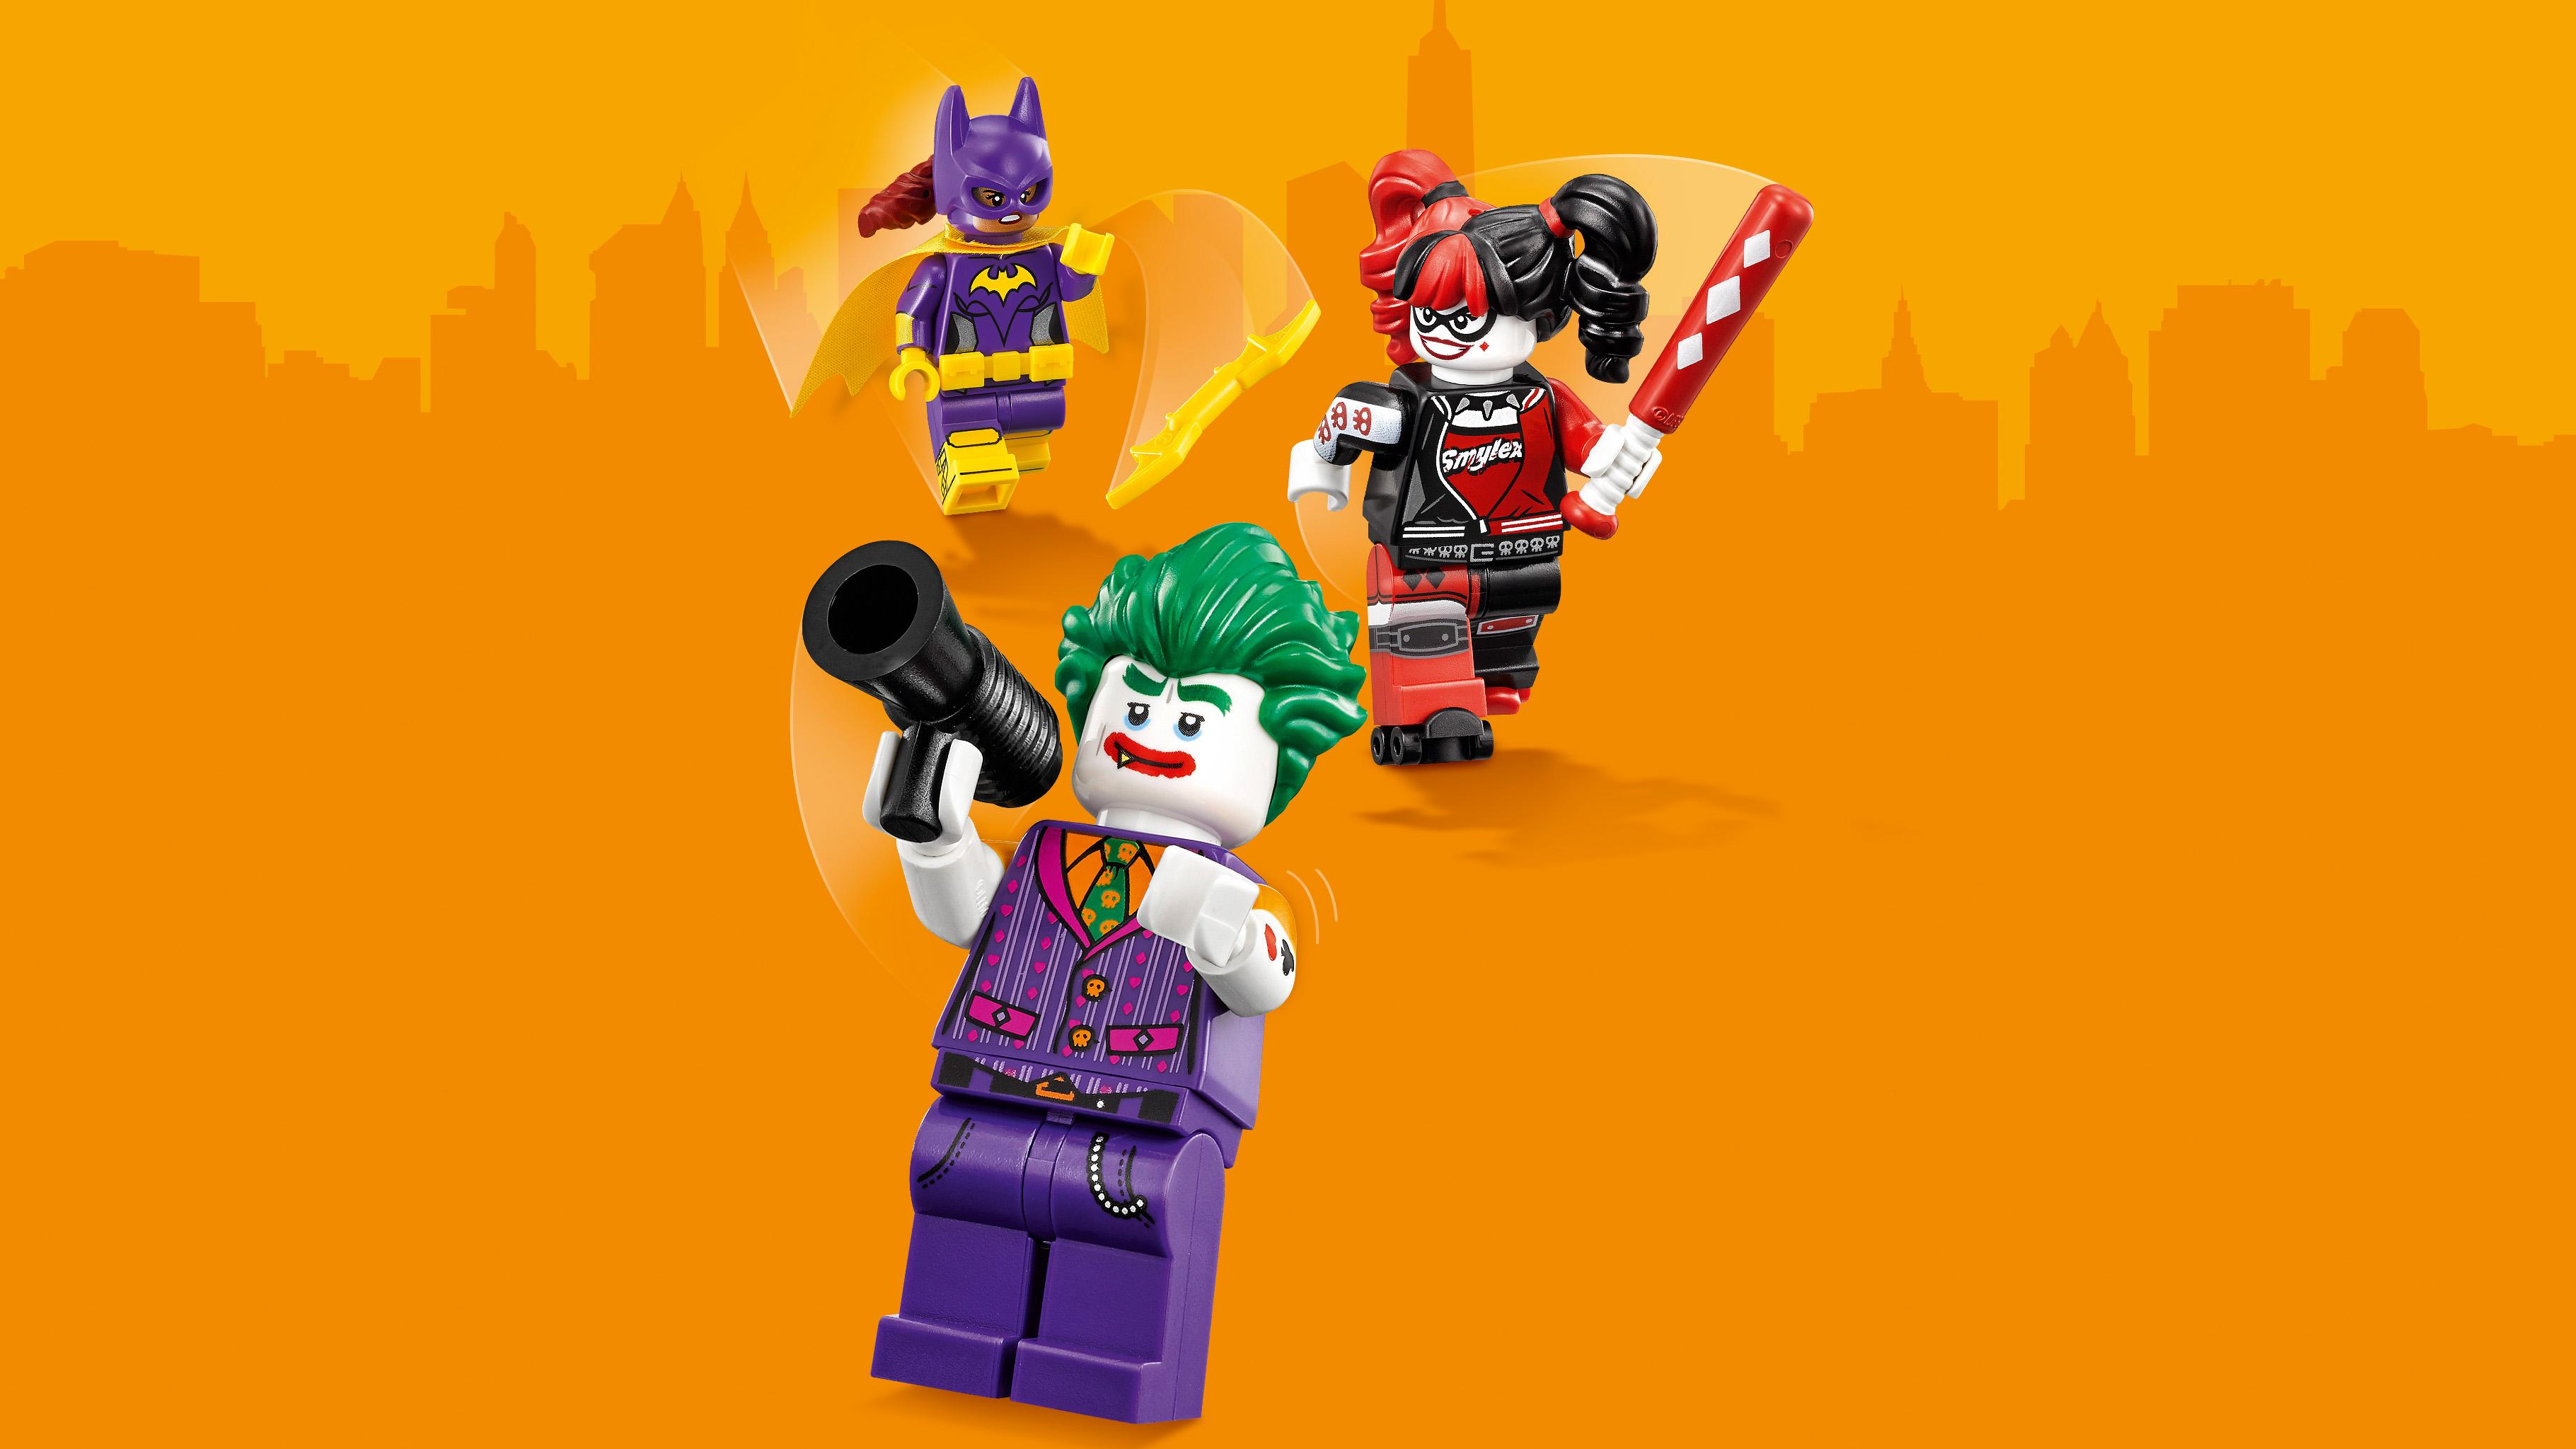 Amazon.com: THE LEGO BATMAN MOVIE The Joker Notorious